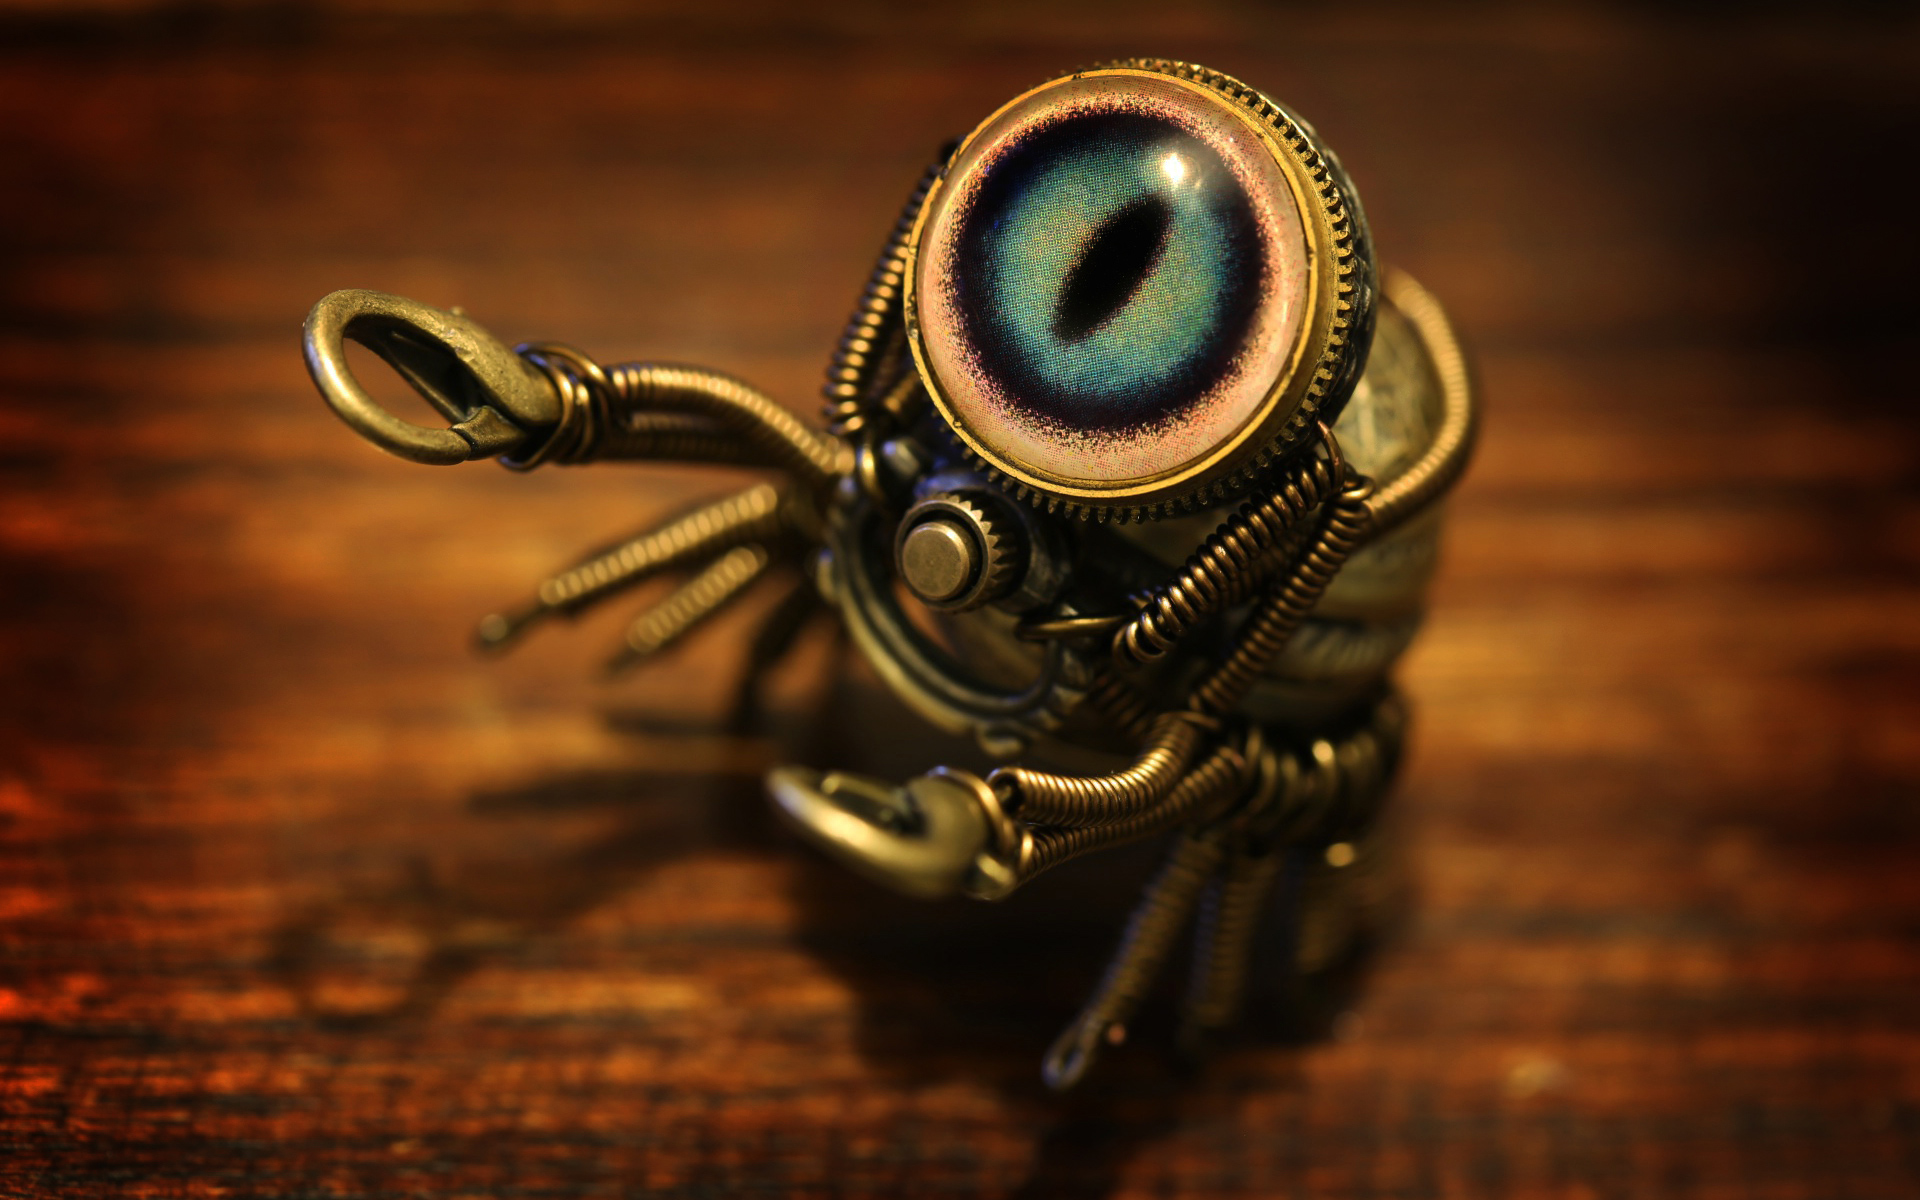 Steampunk Crab HD Wallpaper 1920x1200